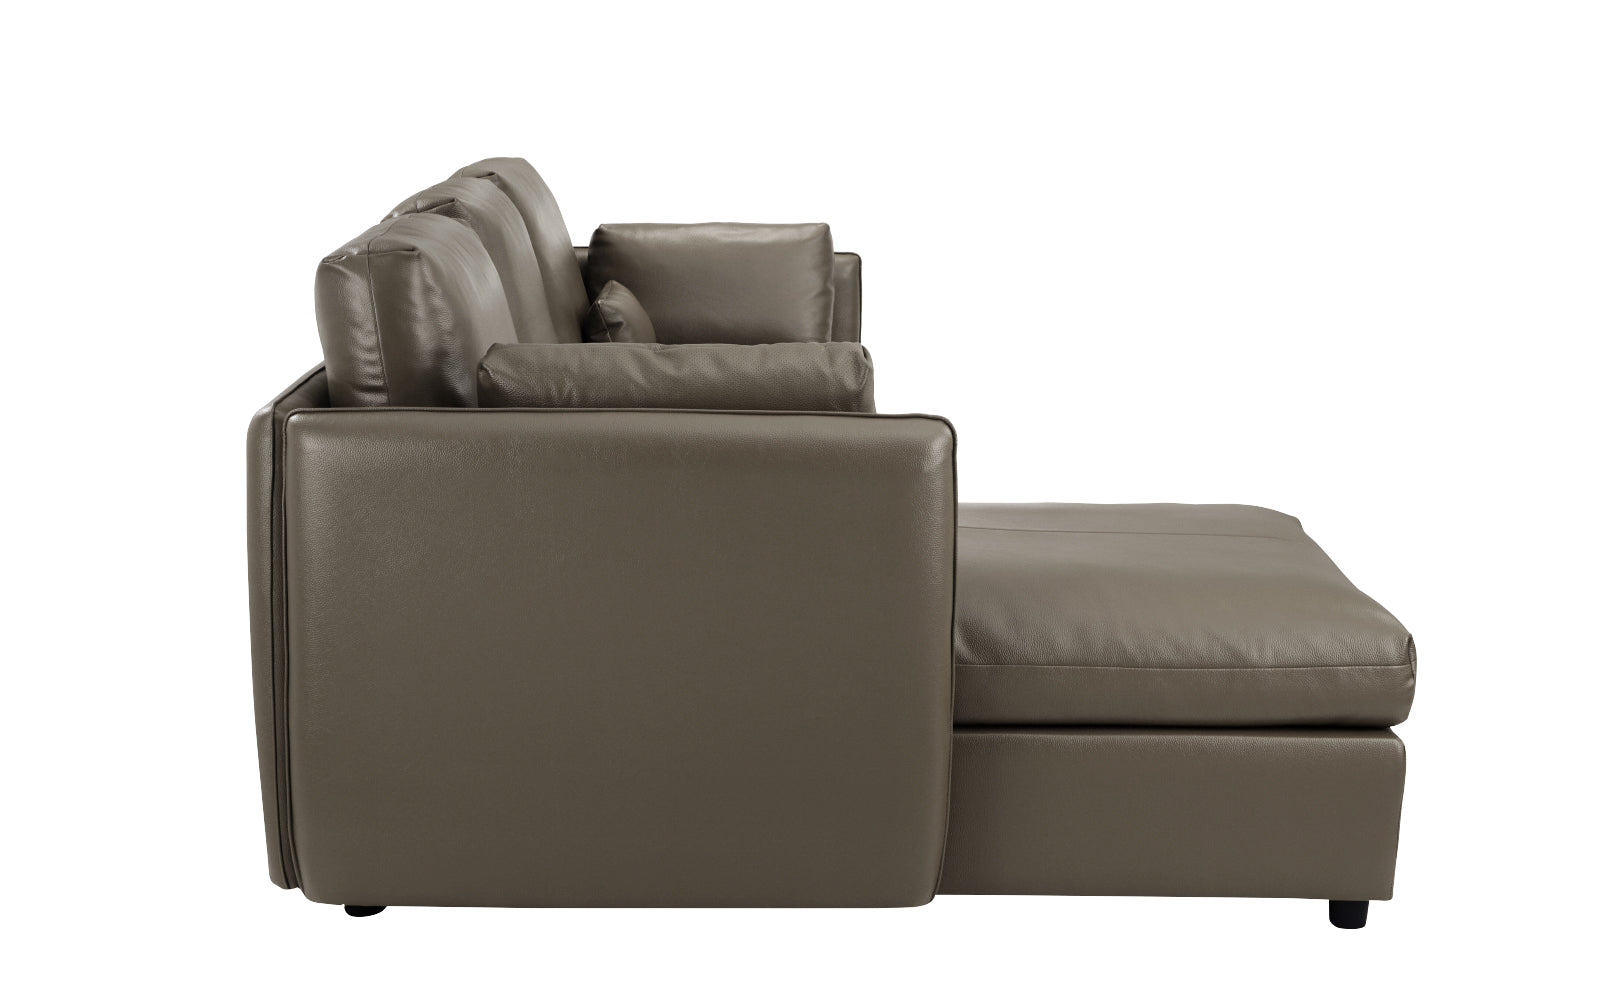 Avery Classic Leather Match Sectional Sofa With Left Chaise